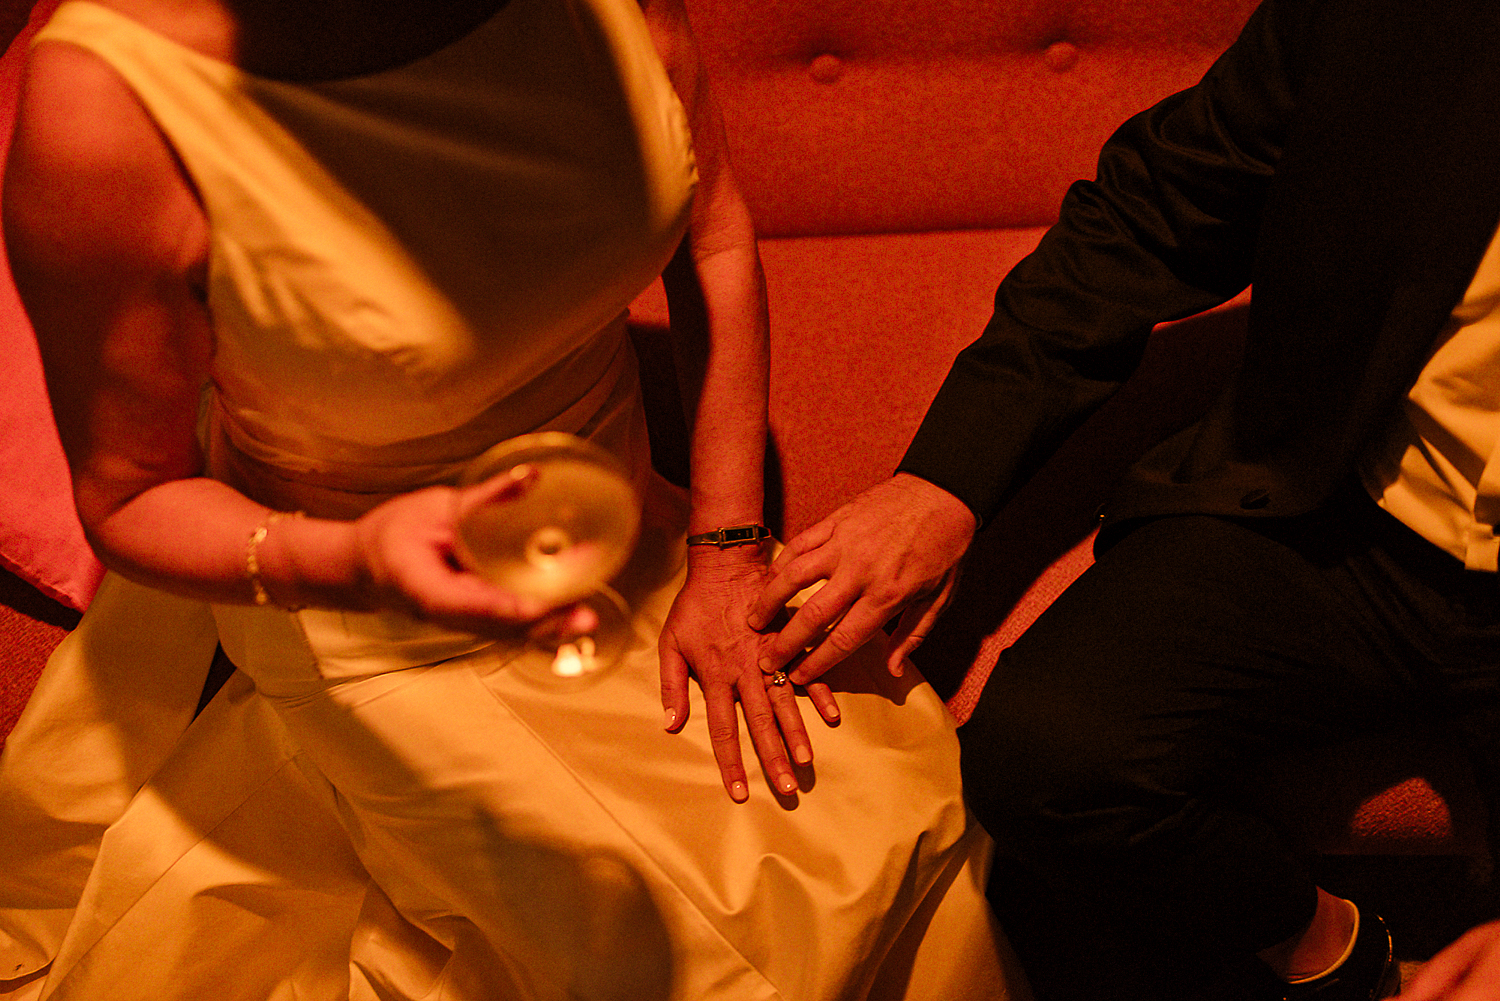 Best-Moody-Documentary--Photos-Wedding-Photographers-in-Toronto-Canada-Vintage-Photojournalistic-Wedding-photography-Candid-moment-portrait-in-retro-basement.jpg